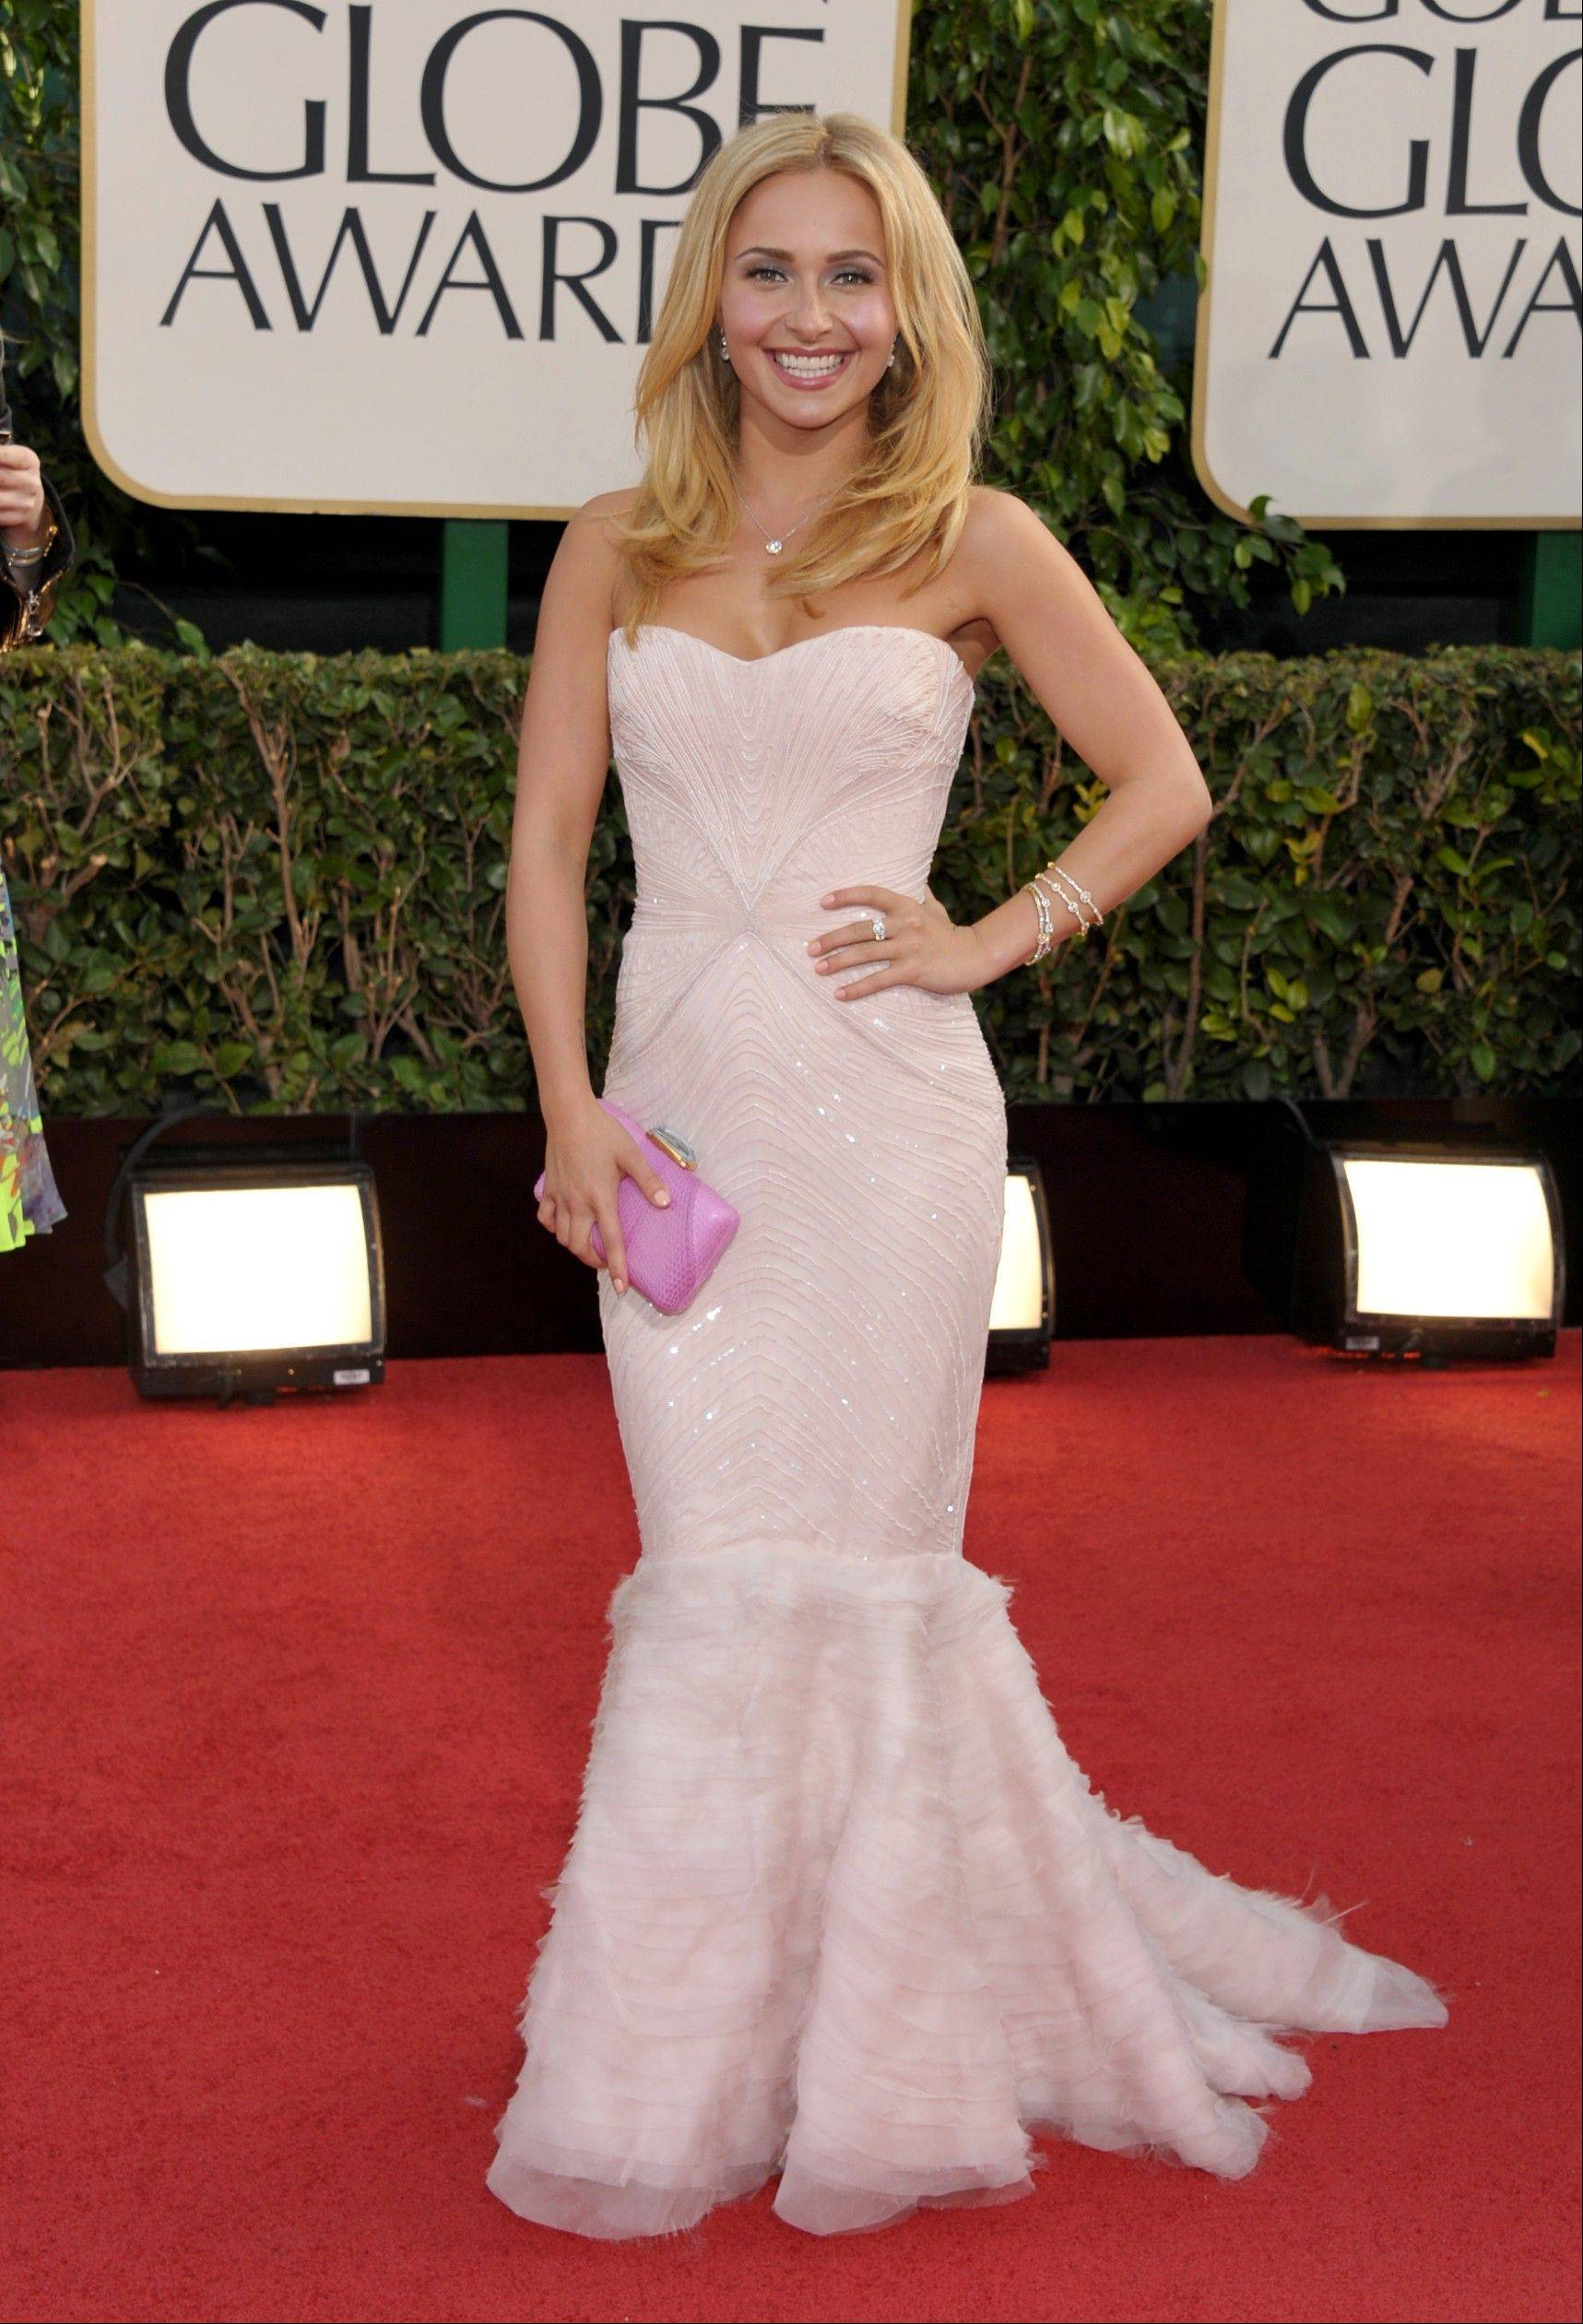 """Nashville"" actress Hayden Panettiere arrives at the 70th Annual Golden Globe Awards at the Beverly Hilton Hotel on Sunday Jan. 13, 2013, in Beverly Hills, Calif."